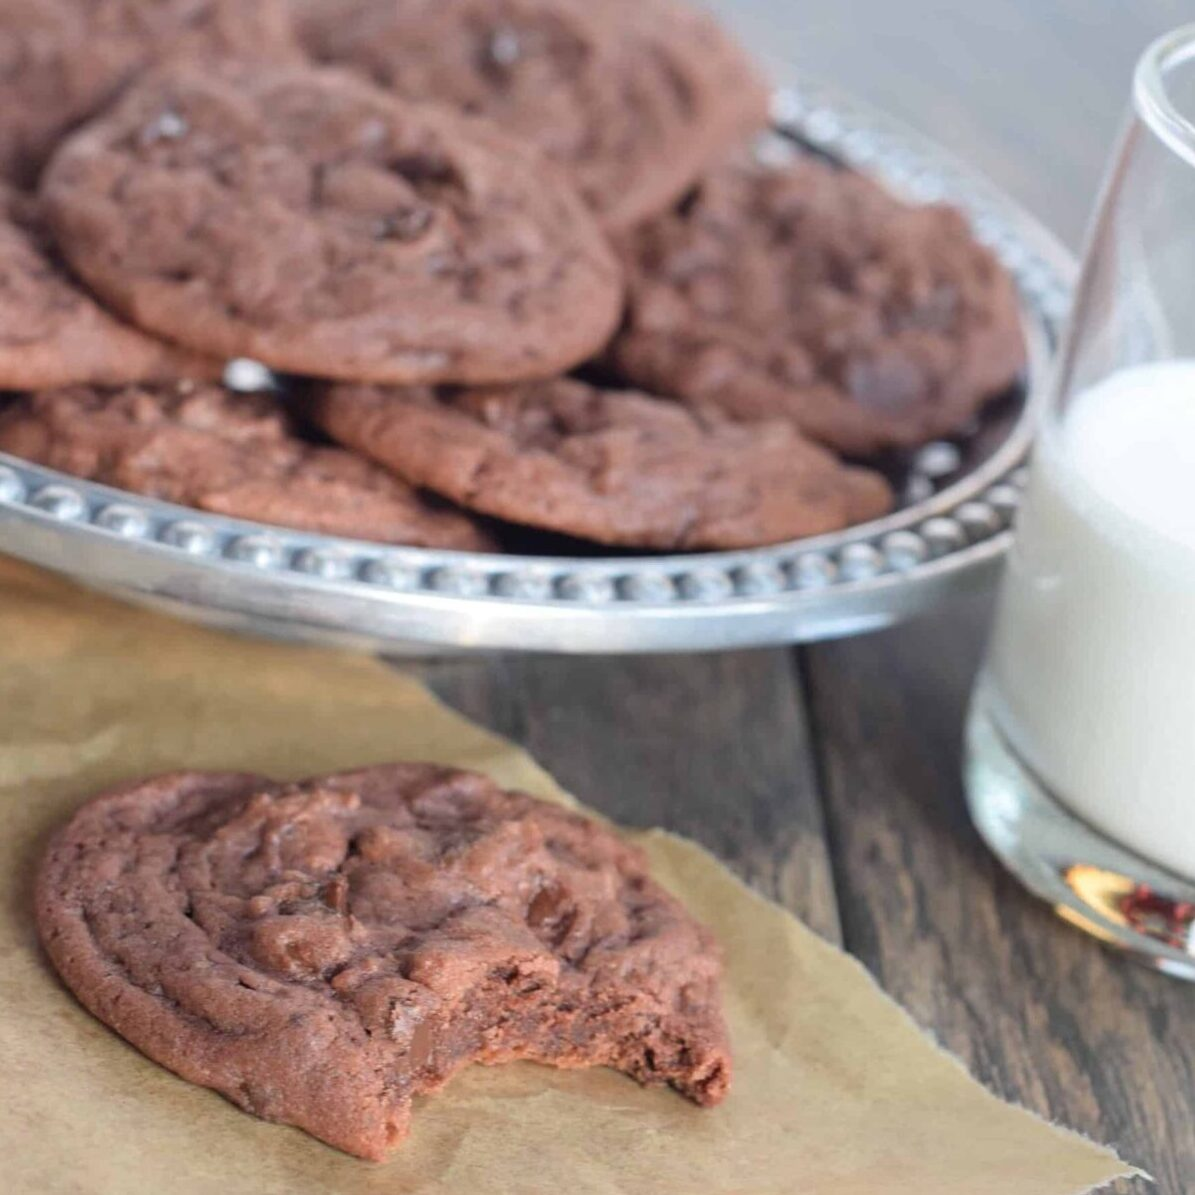 Chocolate cookies with chocolate chips with bite out of one on parchment. Plate of them behind it and glass of milk